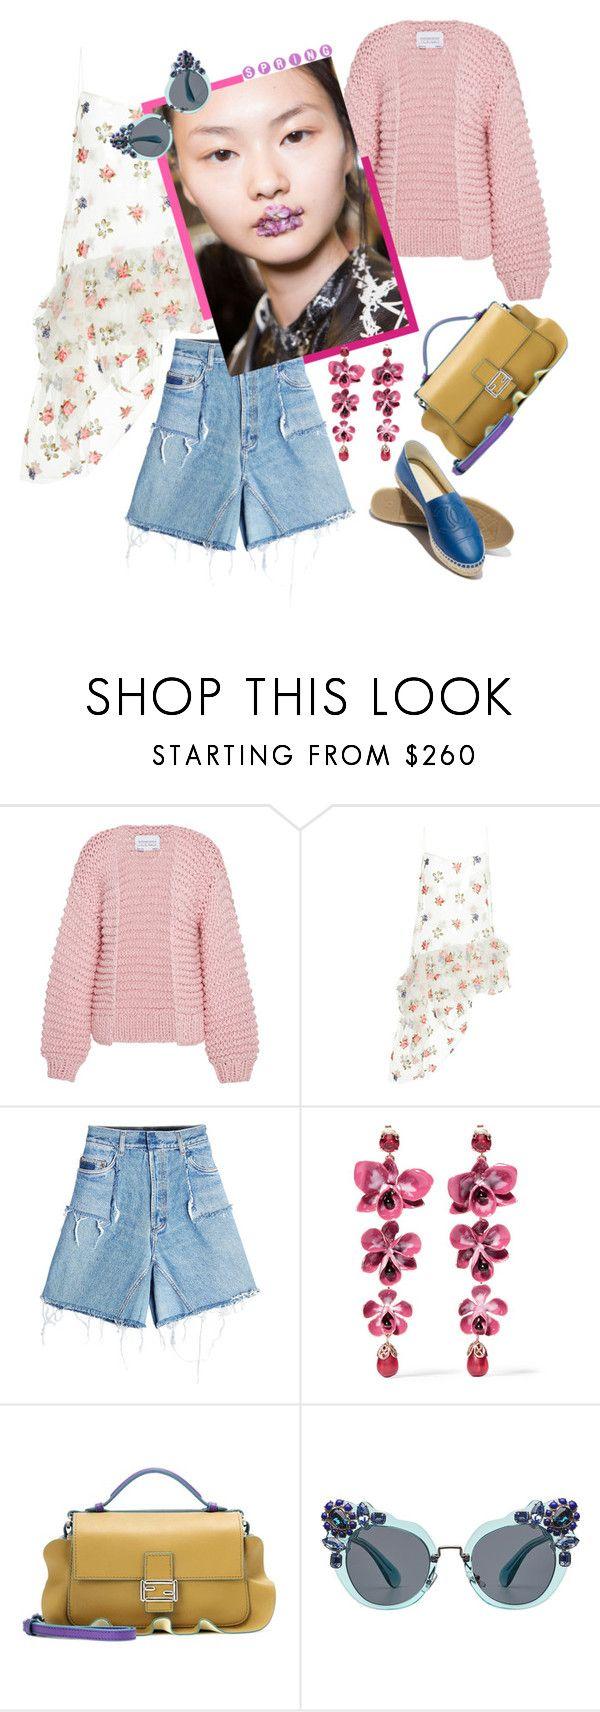 """""""Spring Florals"""" by statuslusso ❤ liked on Polyvore featuring I Love Mr. Mittens, Isa Arfen, Ksenia Schnaider, Preen, Etro, Fendi, Miu Miu, Flowers and springfashion"""